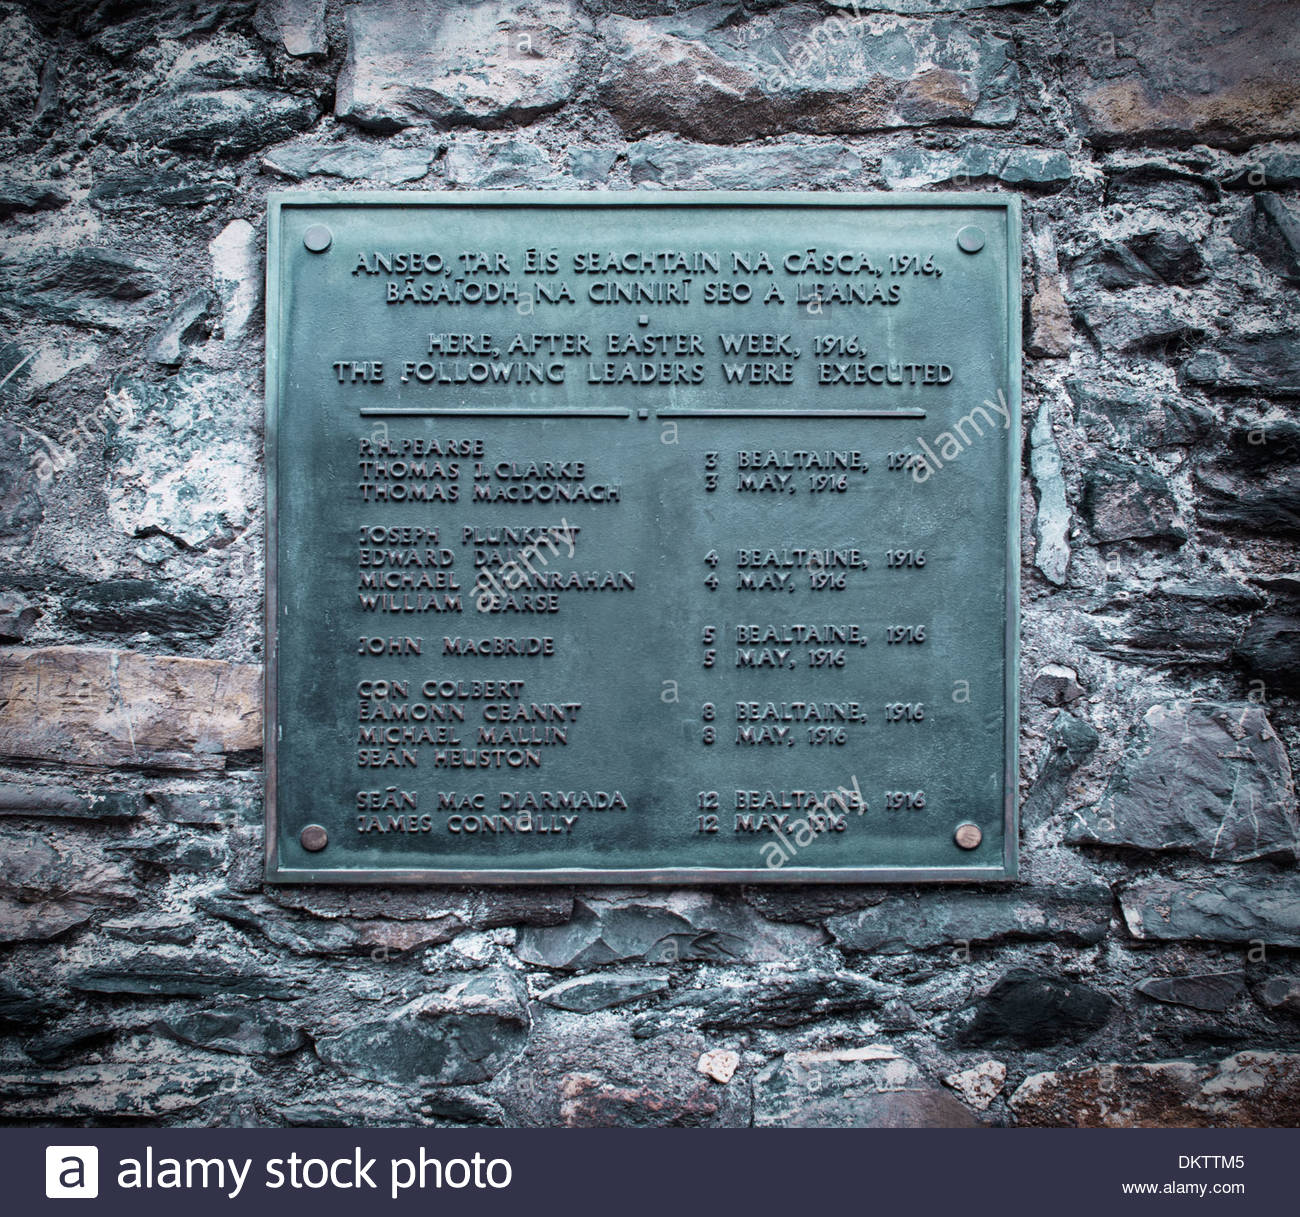 Plaque at Kilmainham Jail, commemorating the execution of leaders of the 1916 Easter Rising, Dublin Ireland Stock Photo